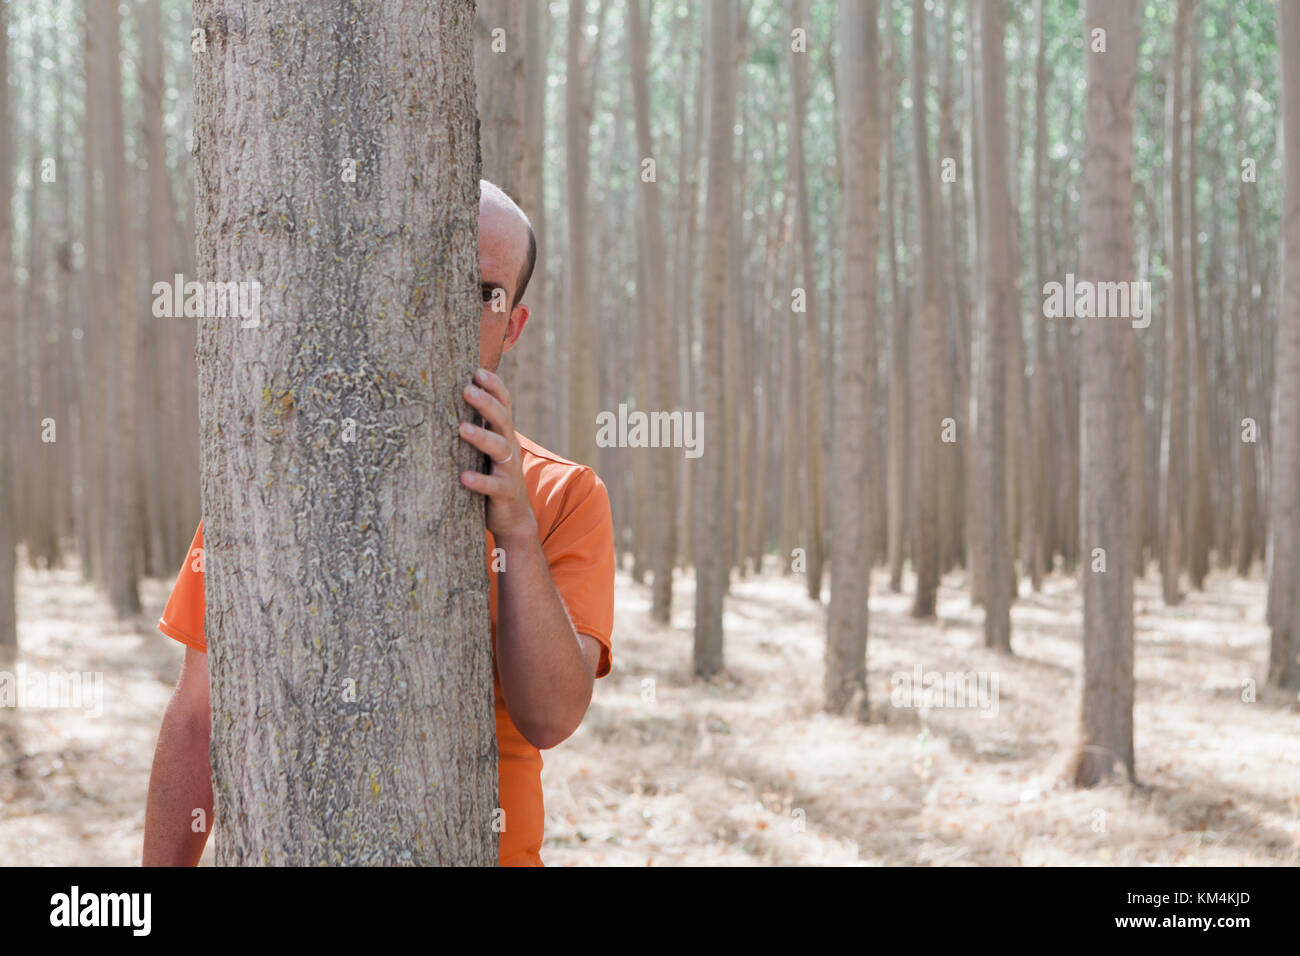 Man peering from behind a poplar tree trunk on a commercial tree farm. - Stock Image